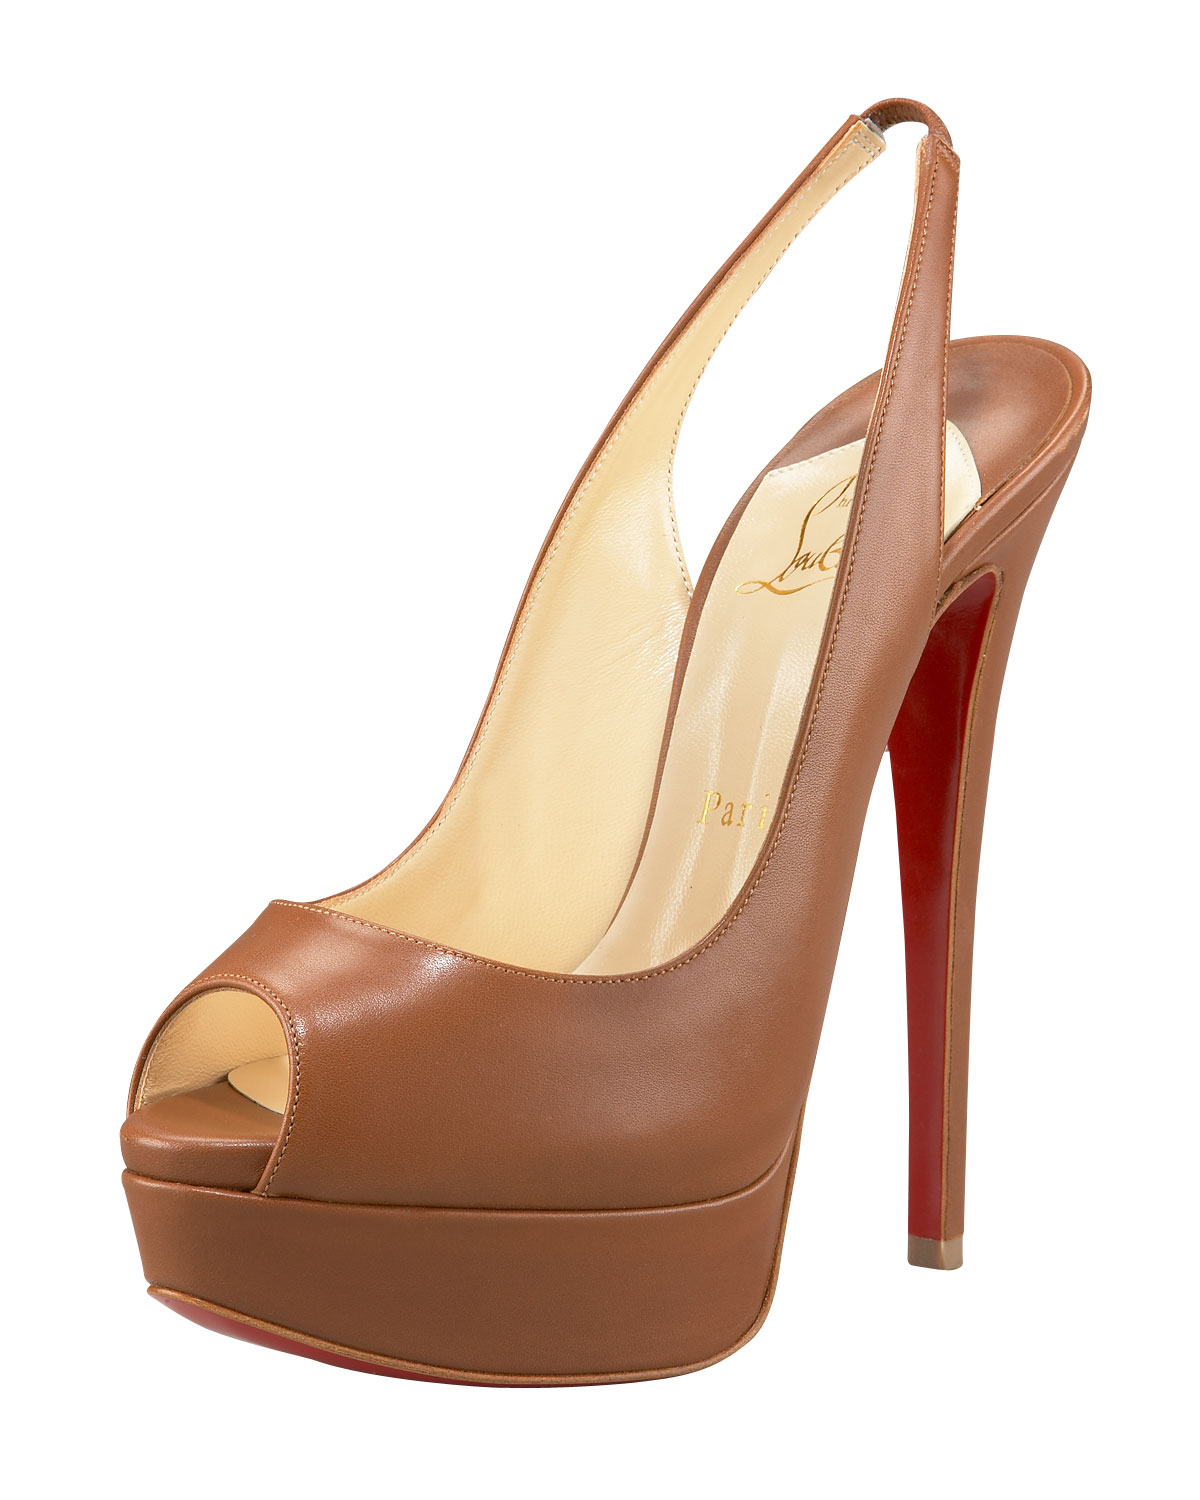 replica louboutin sneakers for men - christian louboutin peep-toe laser cut platform pumps | cosmetics ...